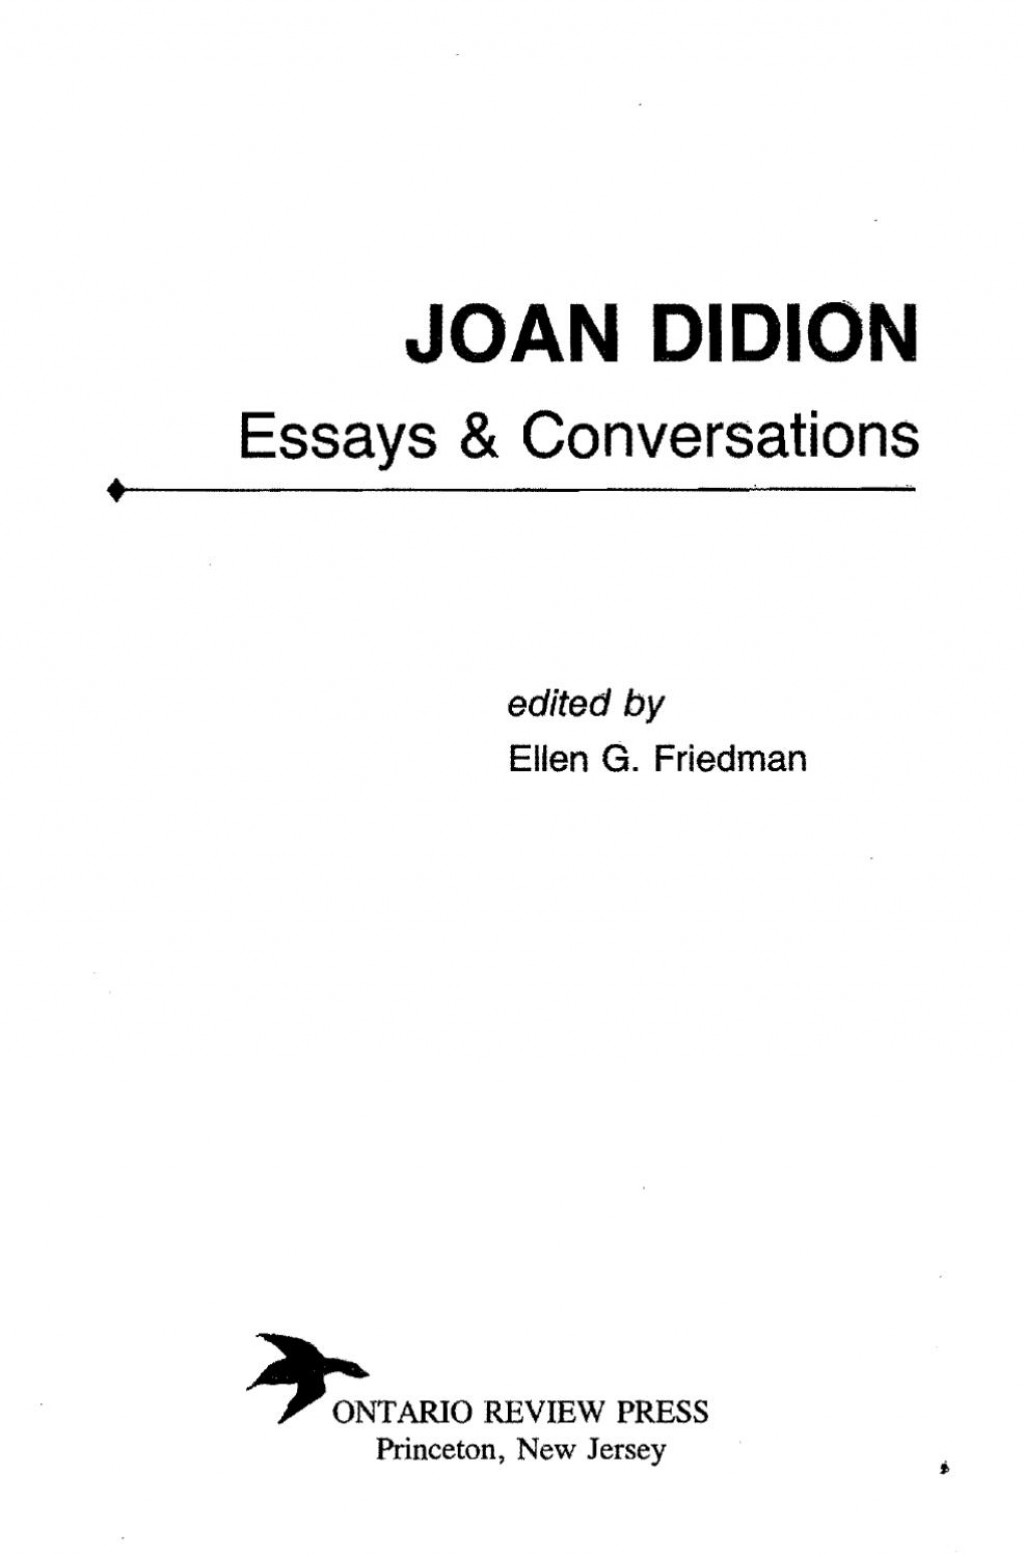 017 Essay Example Page 1 Joan Didion Singular Essays On Santa Ana Winds Collections Large